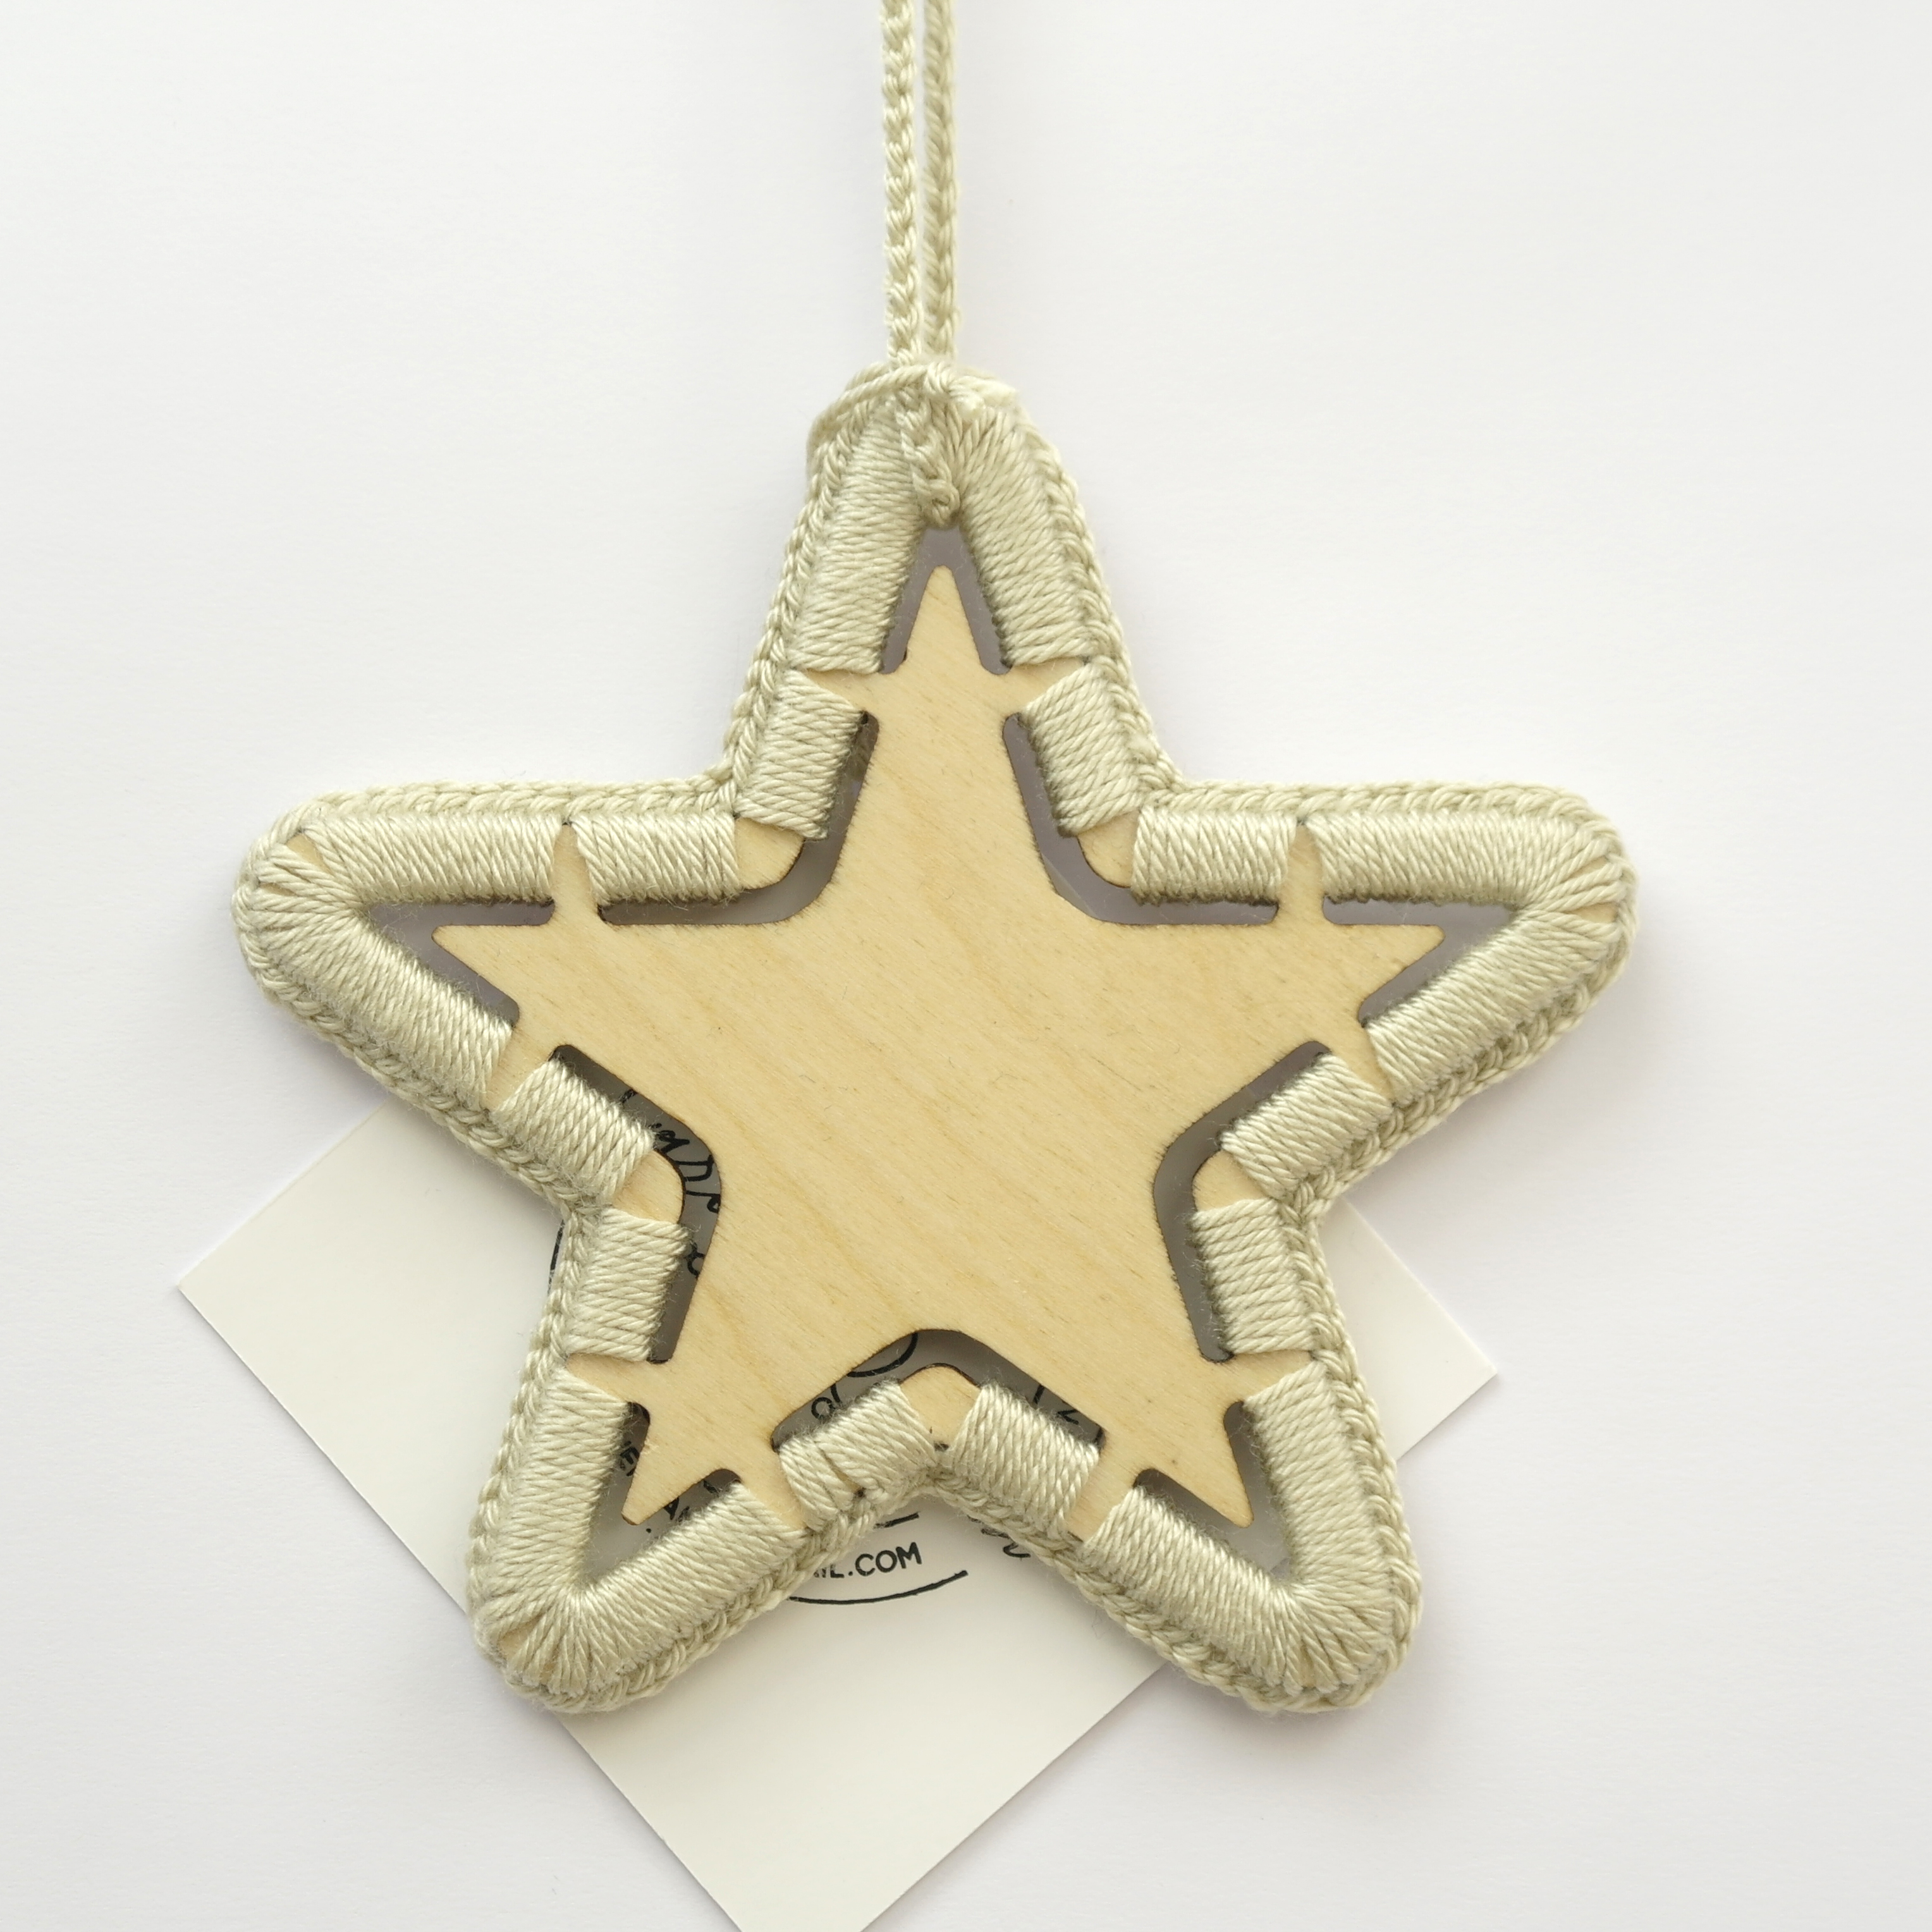 Wooden Crocheted Star Decoration - Available in Sandstone and Mustard